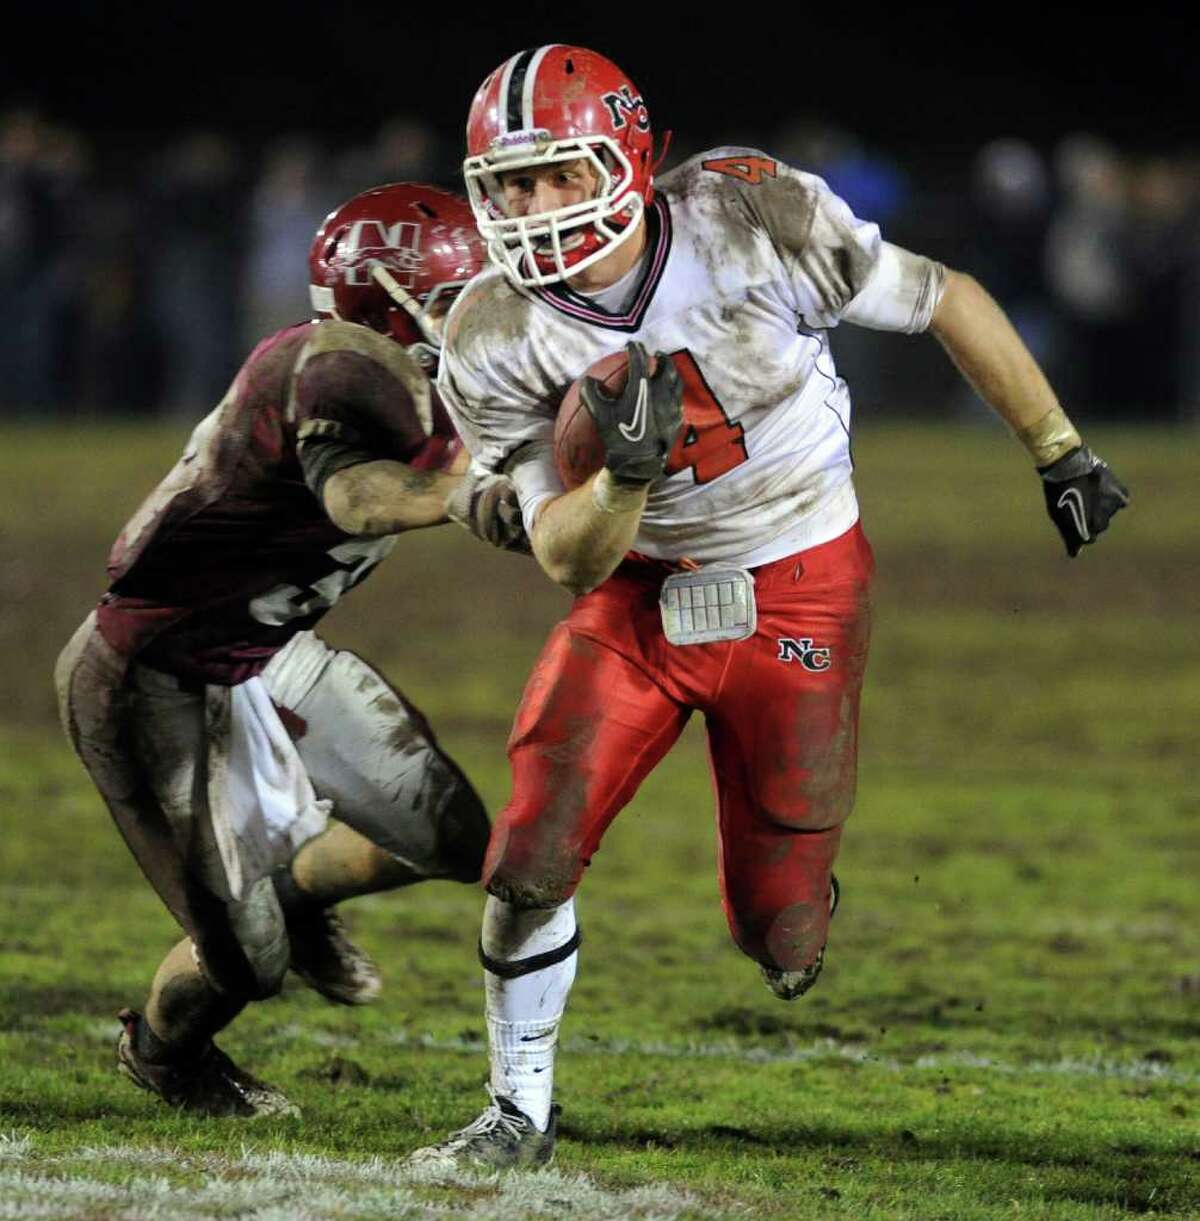 Kevein Macan of New Canaan carries the ball during Tuesday's Class L quarterfinal game at Naugatuck High School on November 30, 2010.